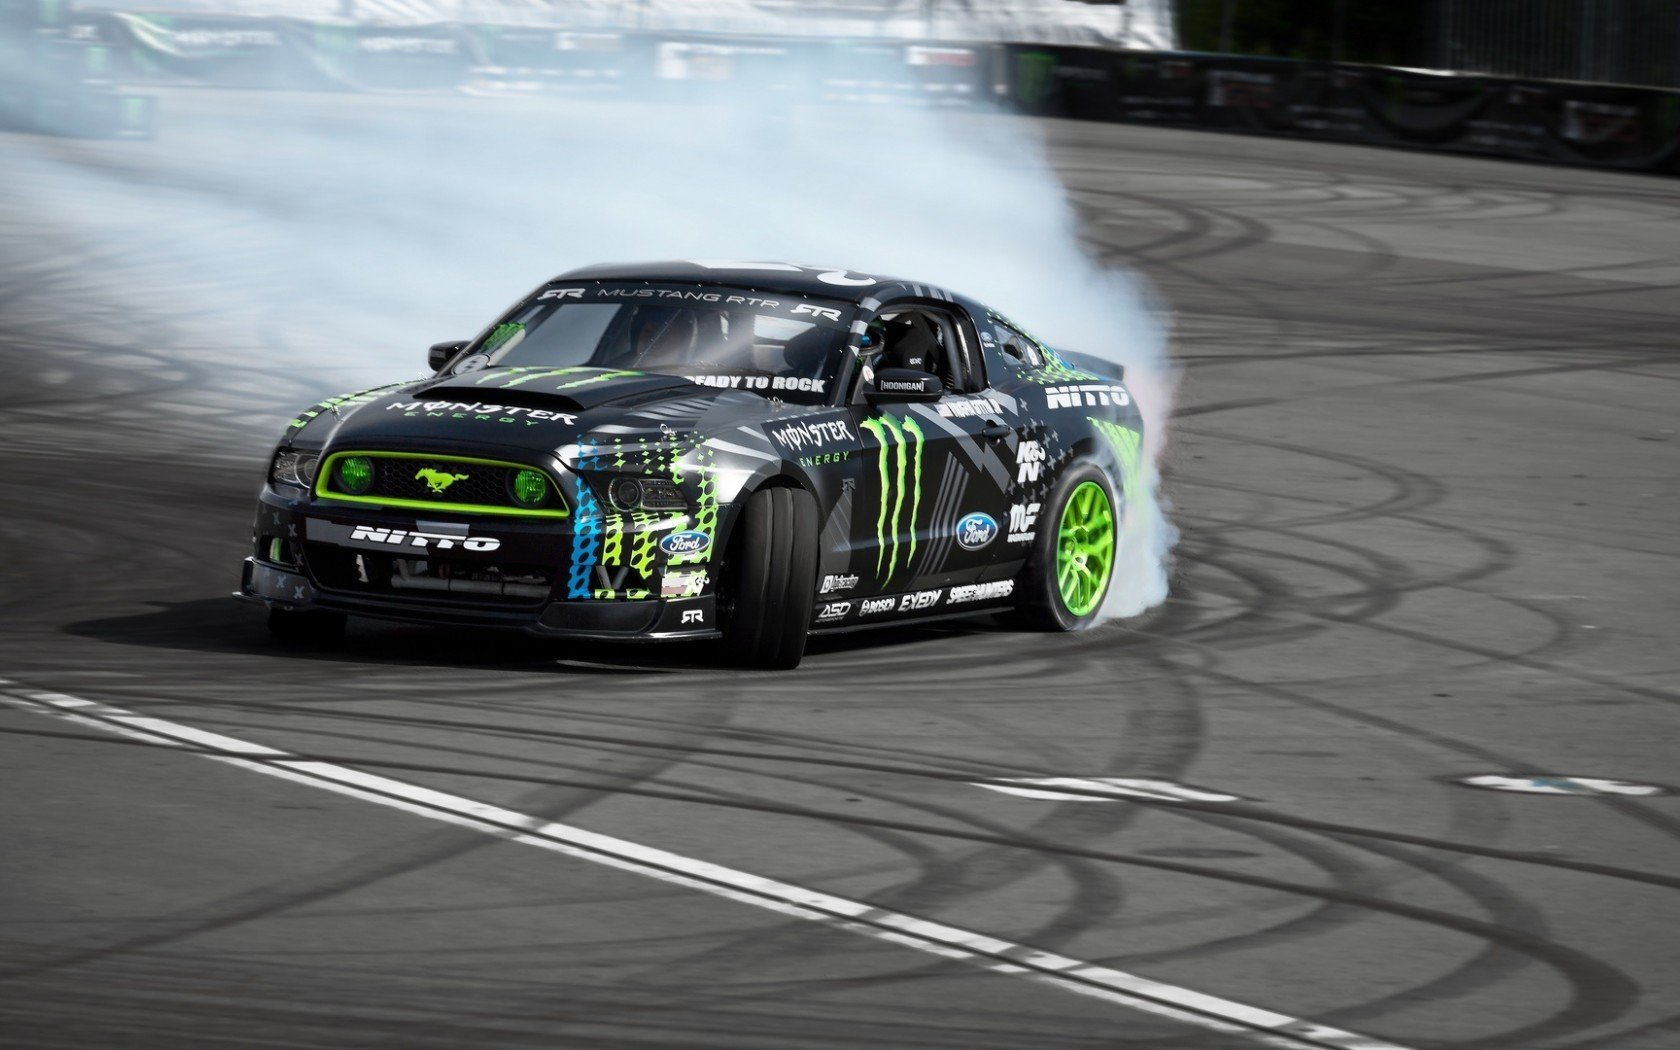 Cool Cars Drifting Wallpapers Hd Ford Mustang Rtr Monster Energy Drift Race Racing